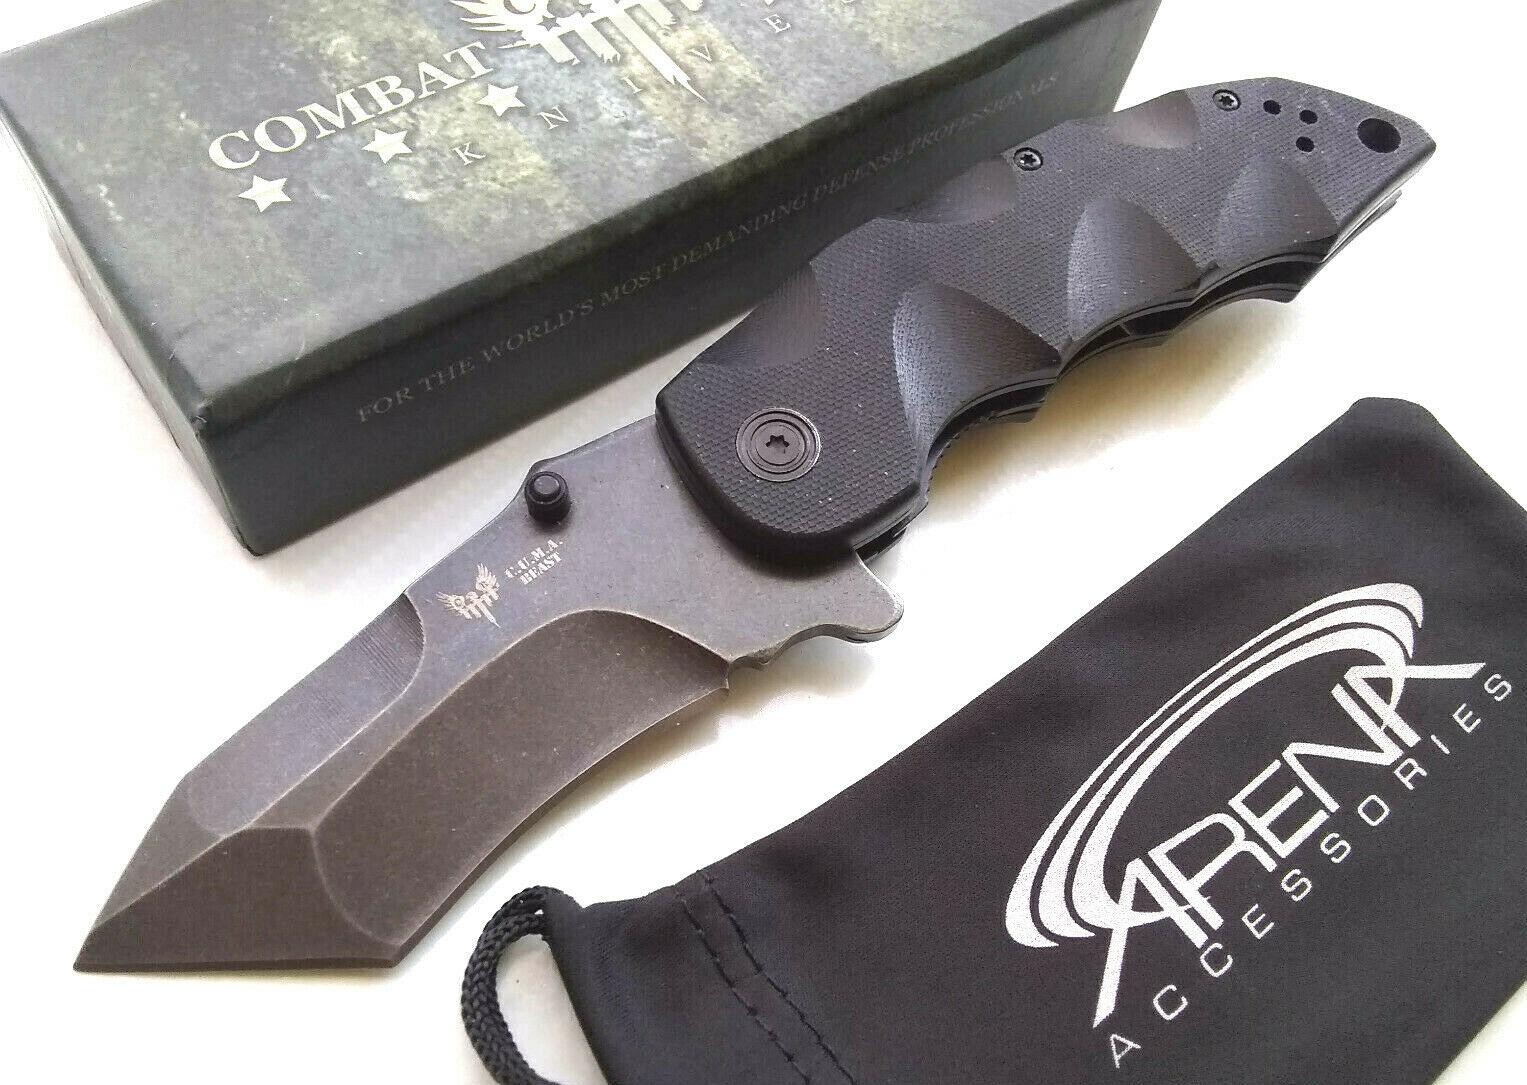 CUMA Beast Tanto Manual Open Pocket Knife G10 Handle Stonewashed AUS-8 Steel Blade EDC Flipper Combat Ready